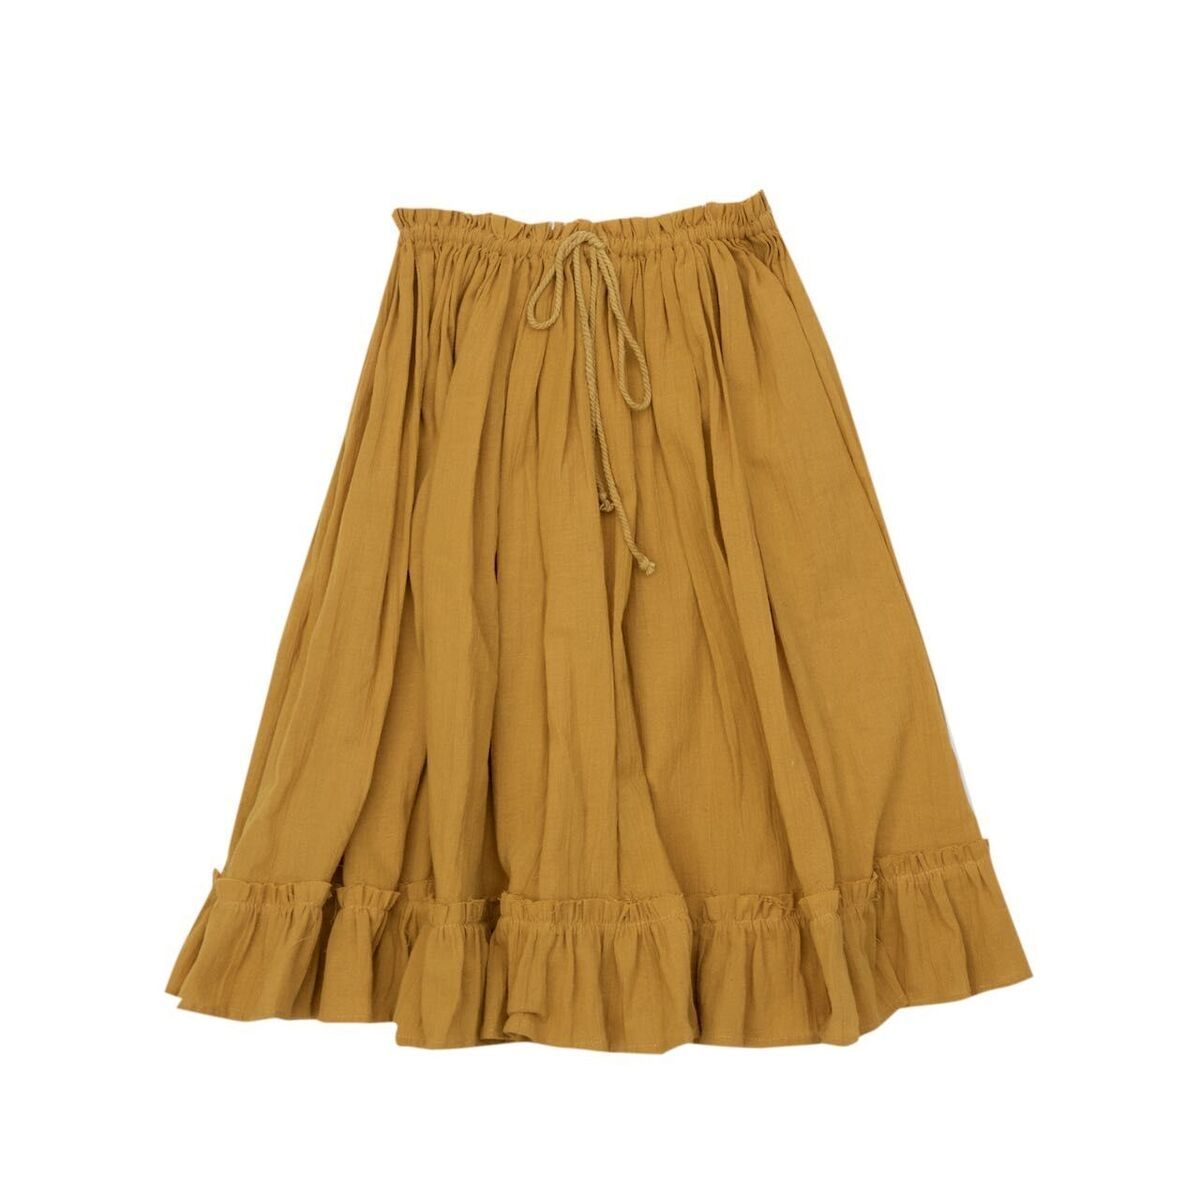 B+L Lola Skirt - Pumpkin